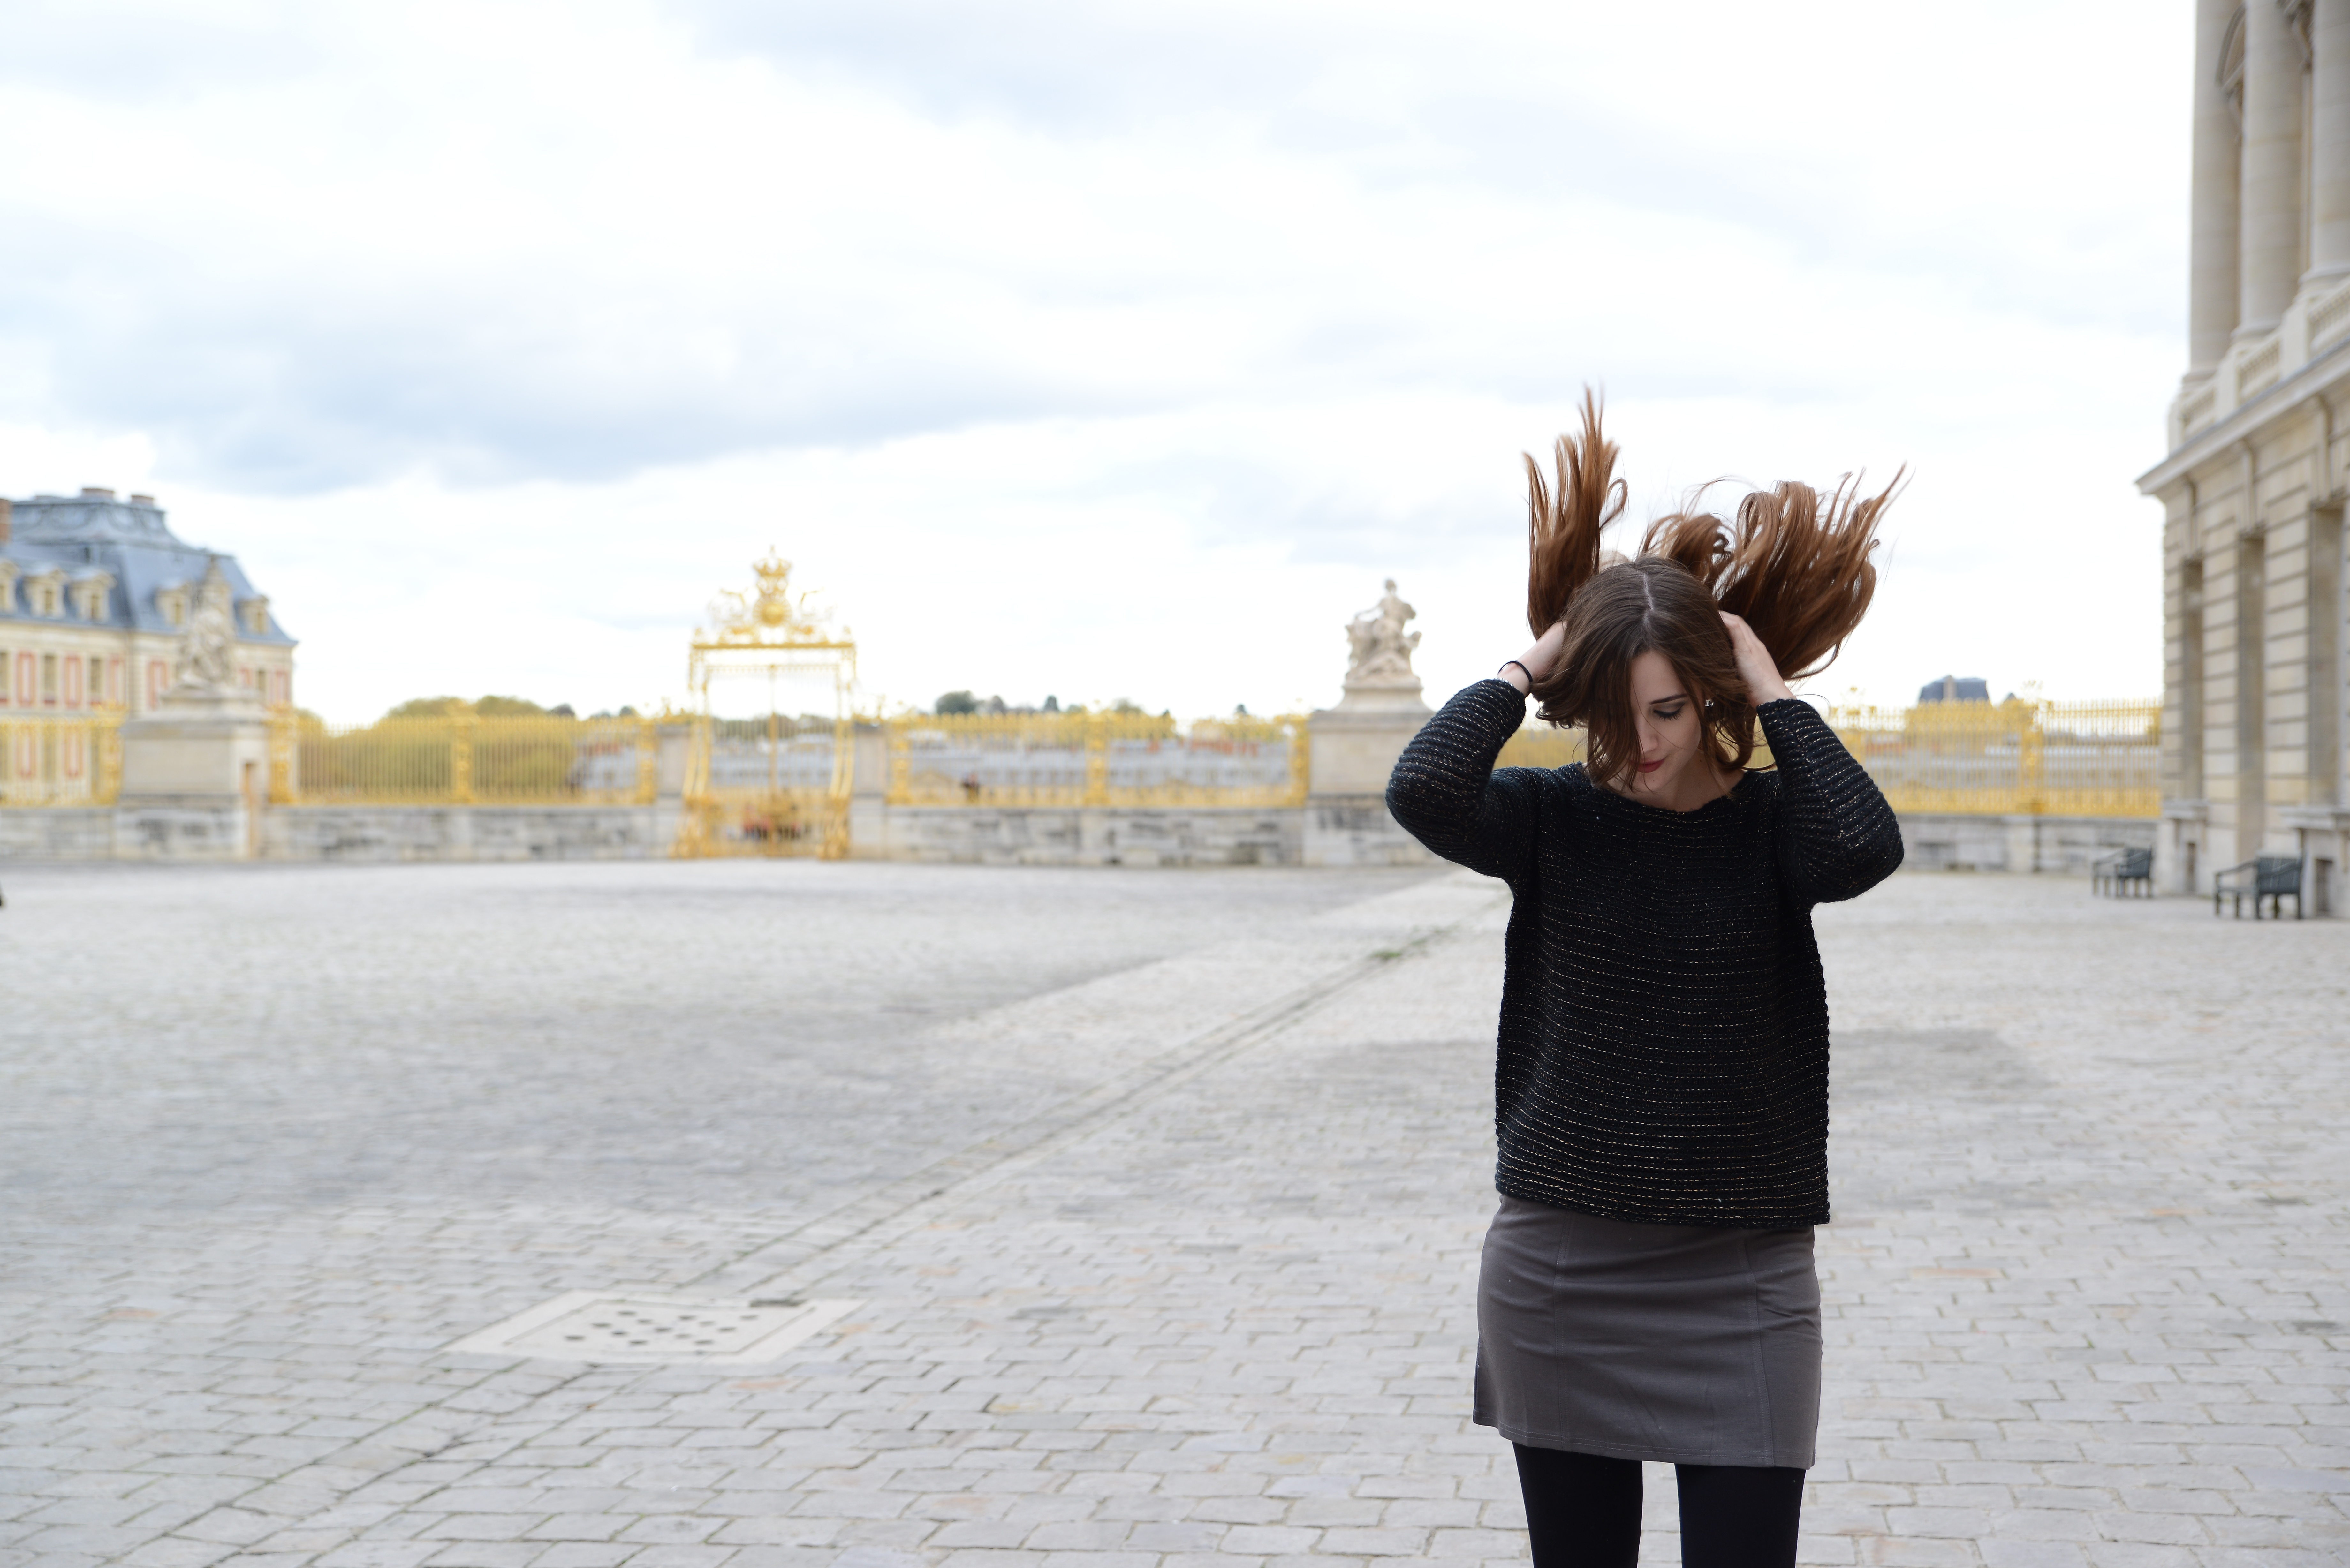 andysparkles-Modeblog Berlin-Witzige Outtakes-Shootings